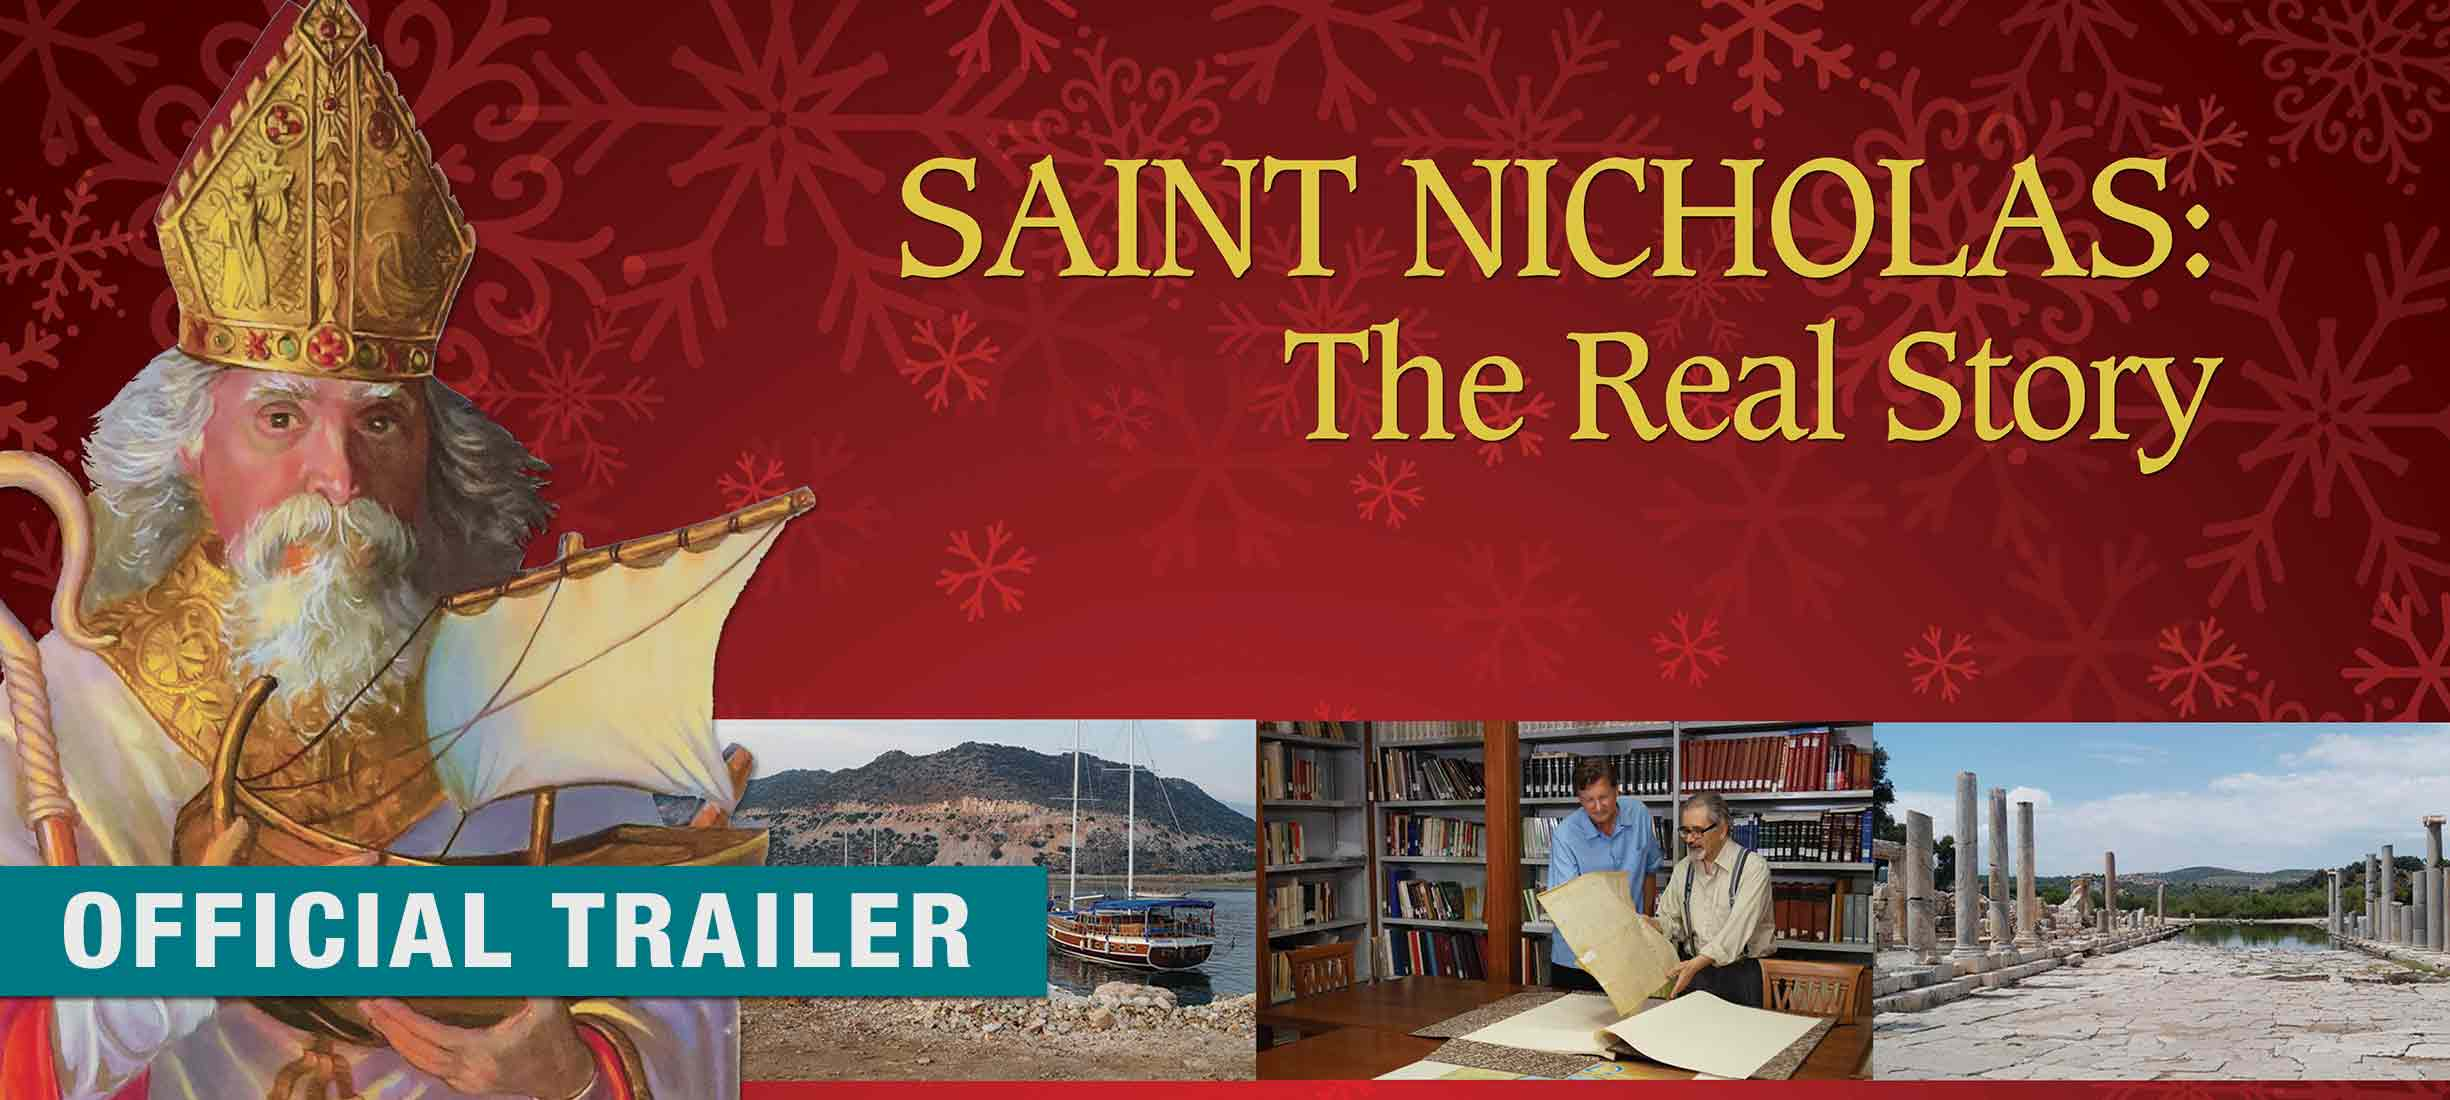 St. Nicolas - The Real Story: Trailer